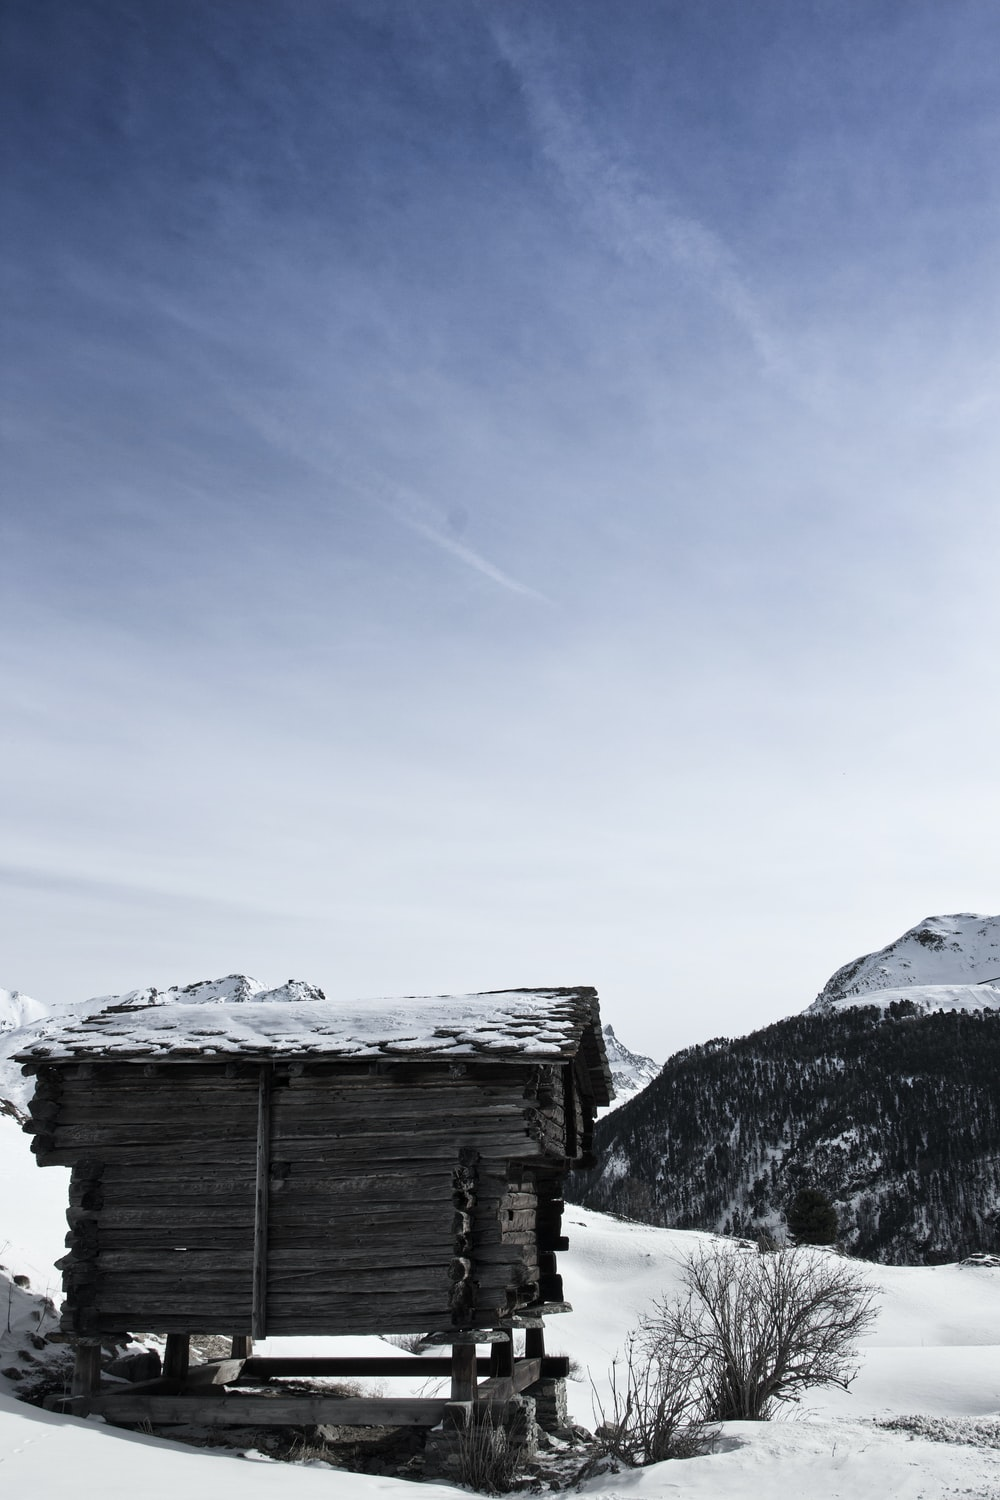 brown wooden house on snow covered ground during daytime